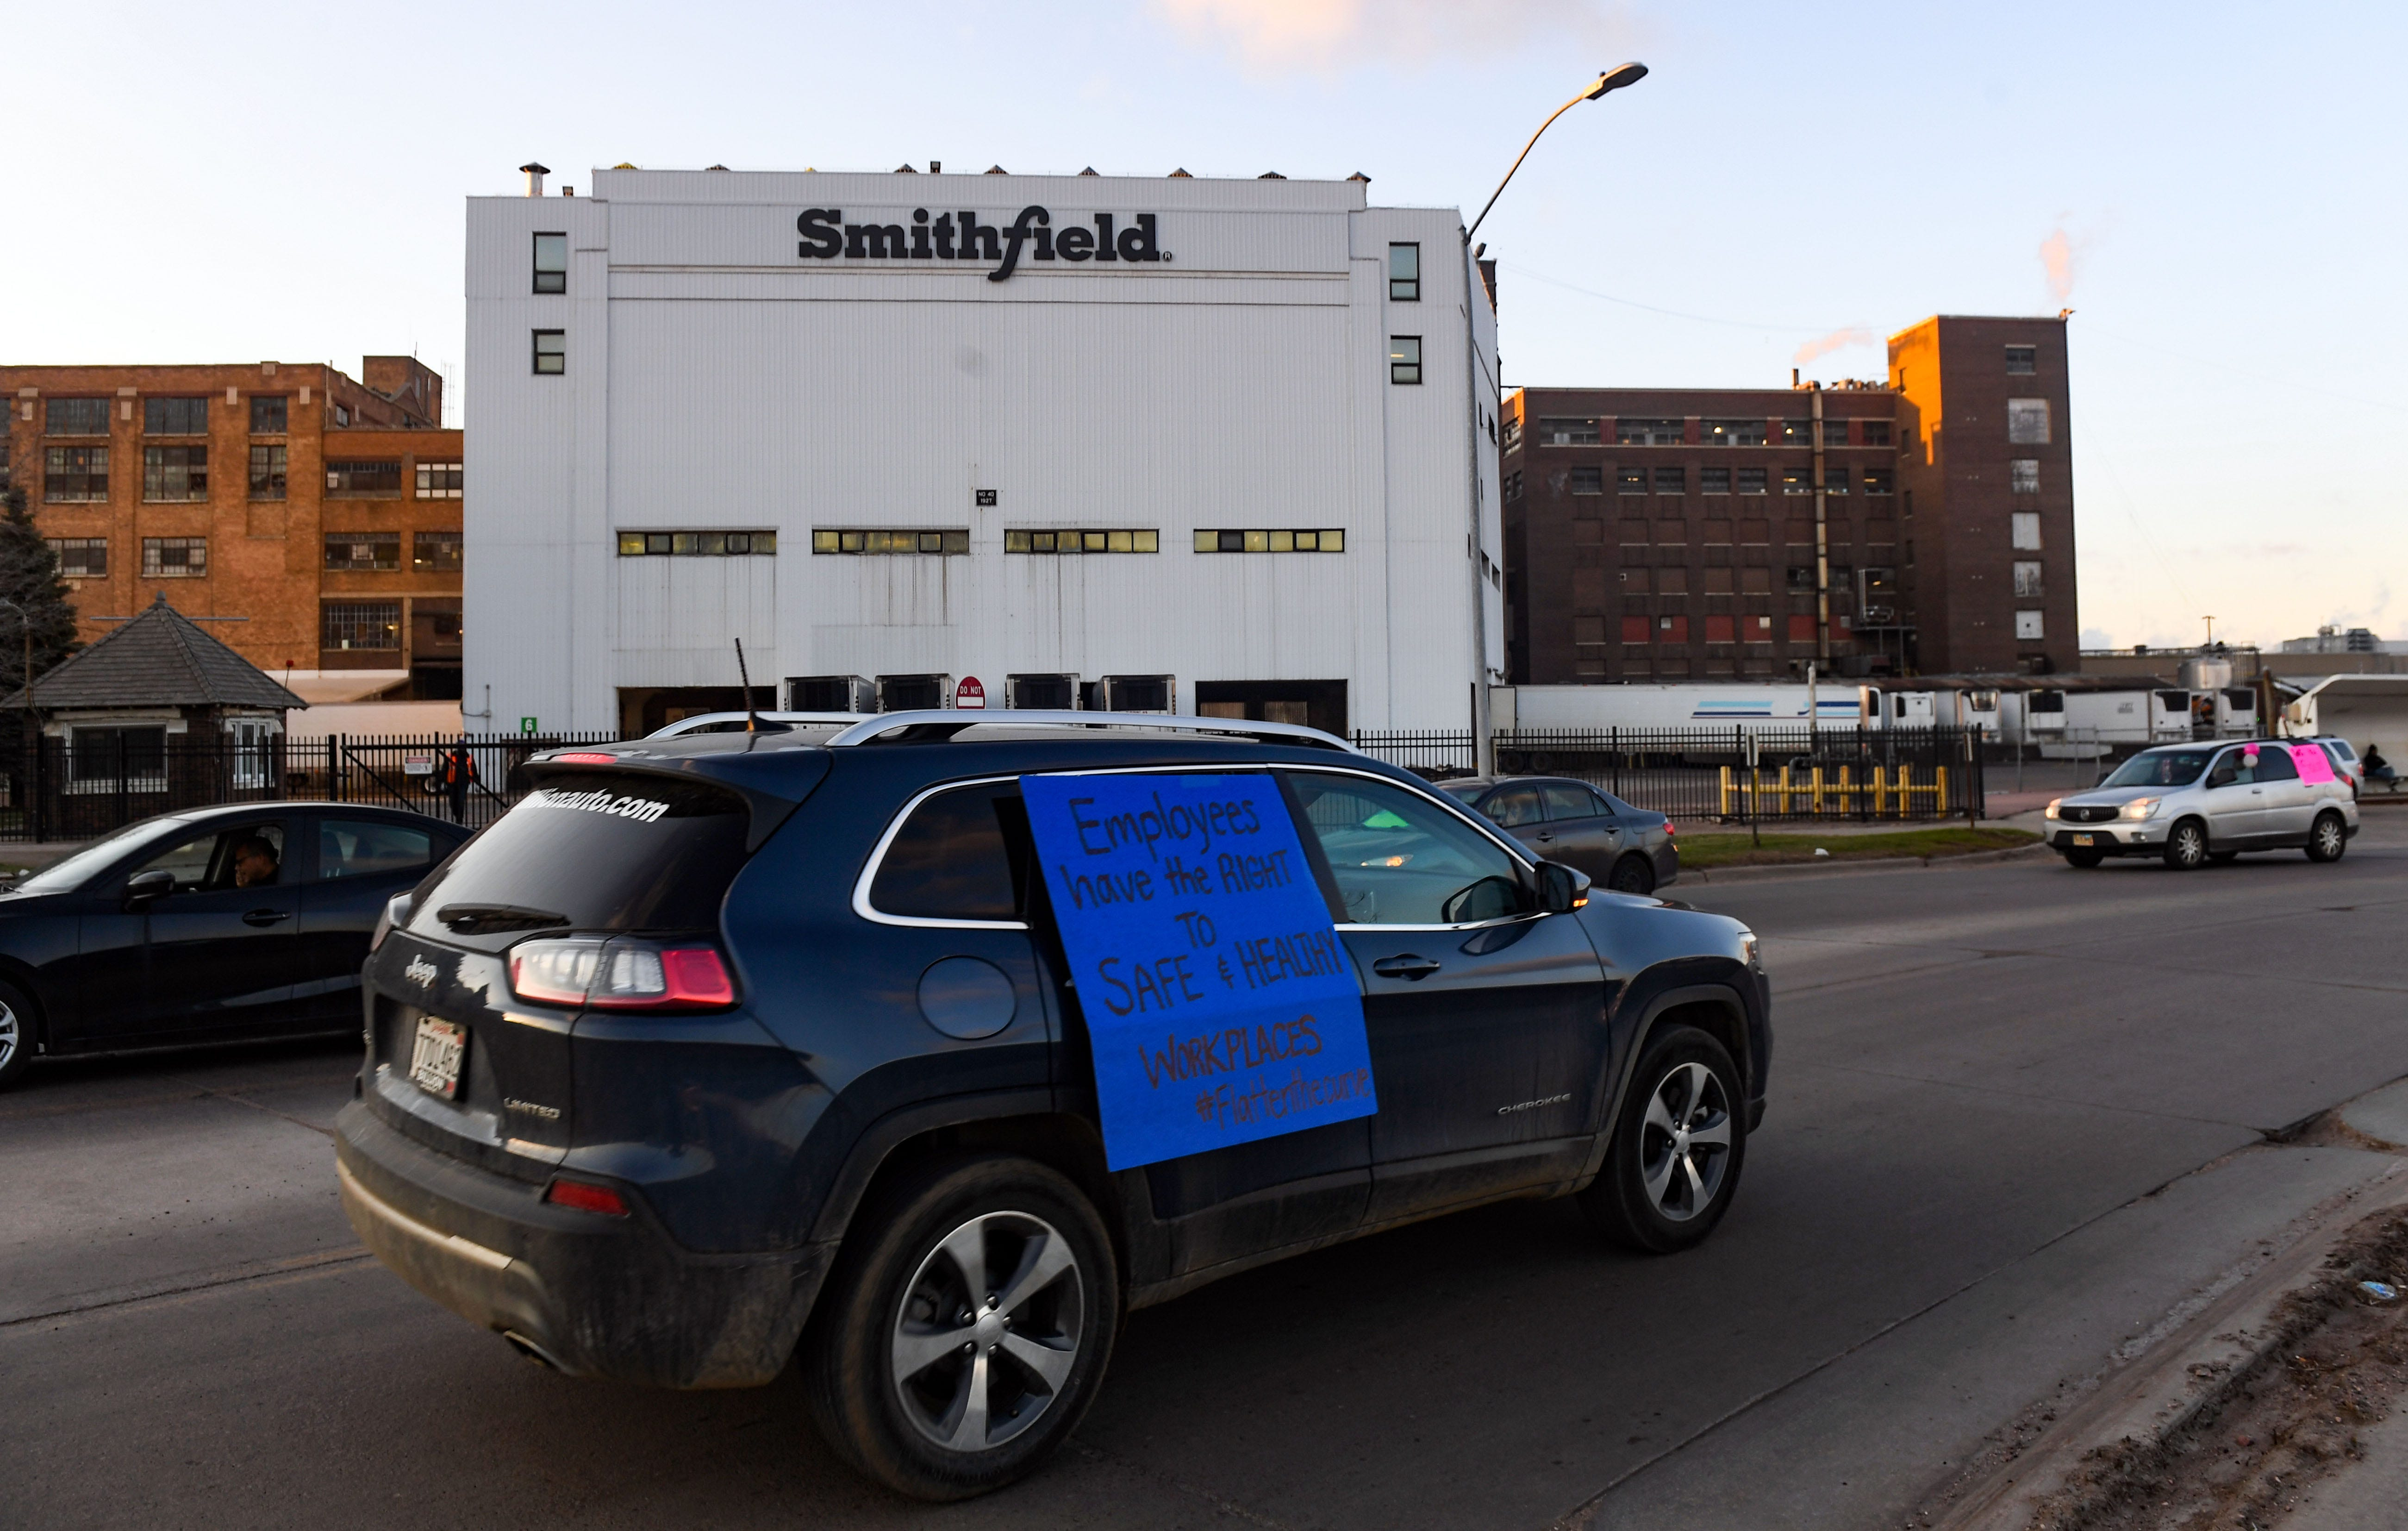 A car sporting a sign calling for a safe and healthy workplace drives past Smithfield Foods, Inc. during a protest on behalf of employees after many workers complained of unsafe working conditions due to the COVID-19 outbreak on Thursday, April 9, in Sioux Falls. Over a week, ver 80 Smithfield employees tested positive for the virus, and the plant is closing for just three days before expecting workers back.